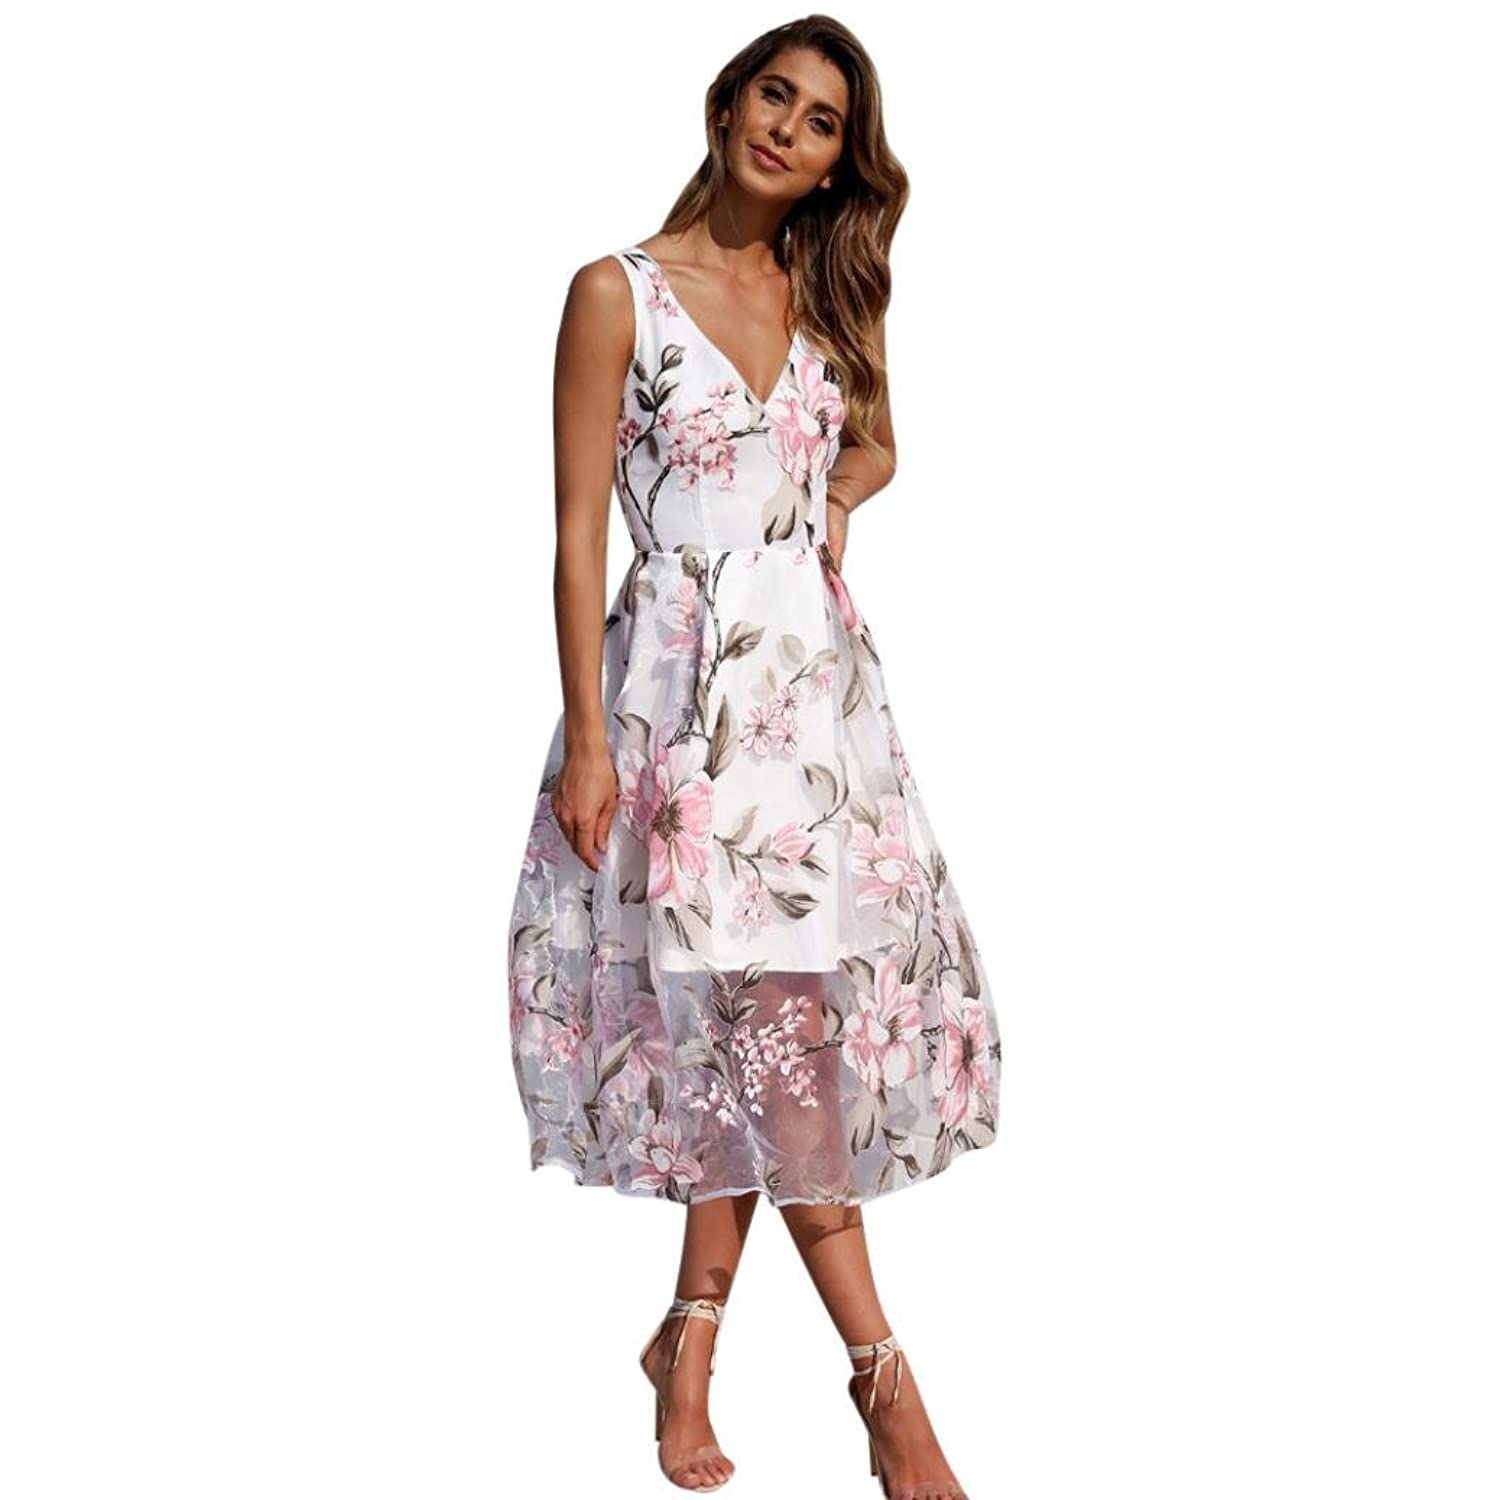 7c47ec358d85e Features: Casual, Sleeveless, Sexy, V-Neck, Floral, Maxi Dress, Party,  Daily Suitable Occasion: Casual / Date / Party / Work / Beach Style